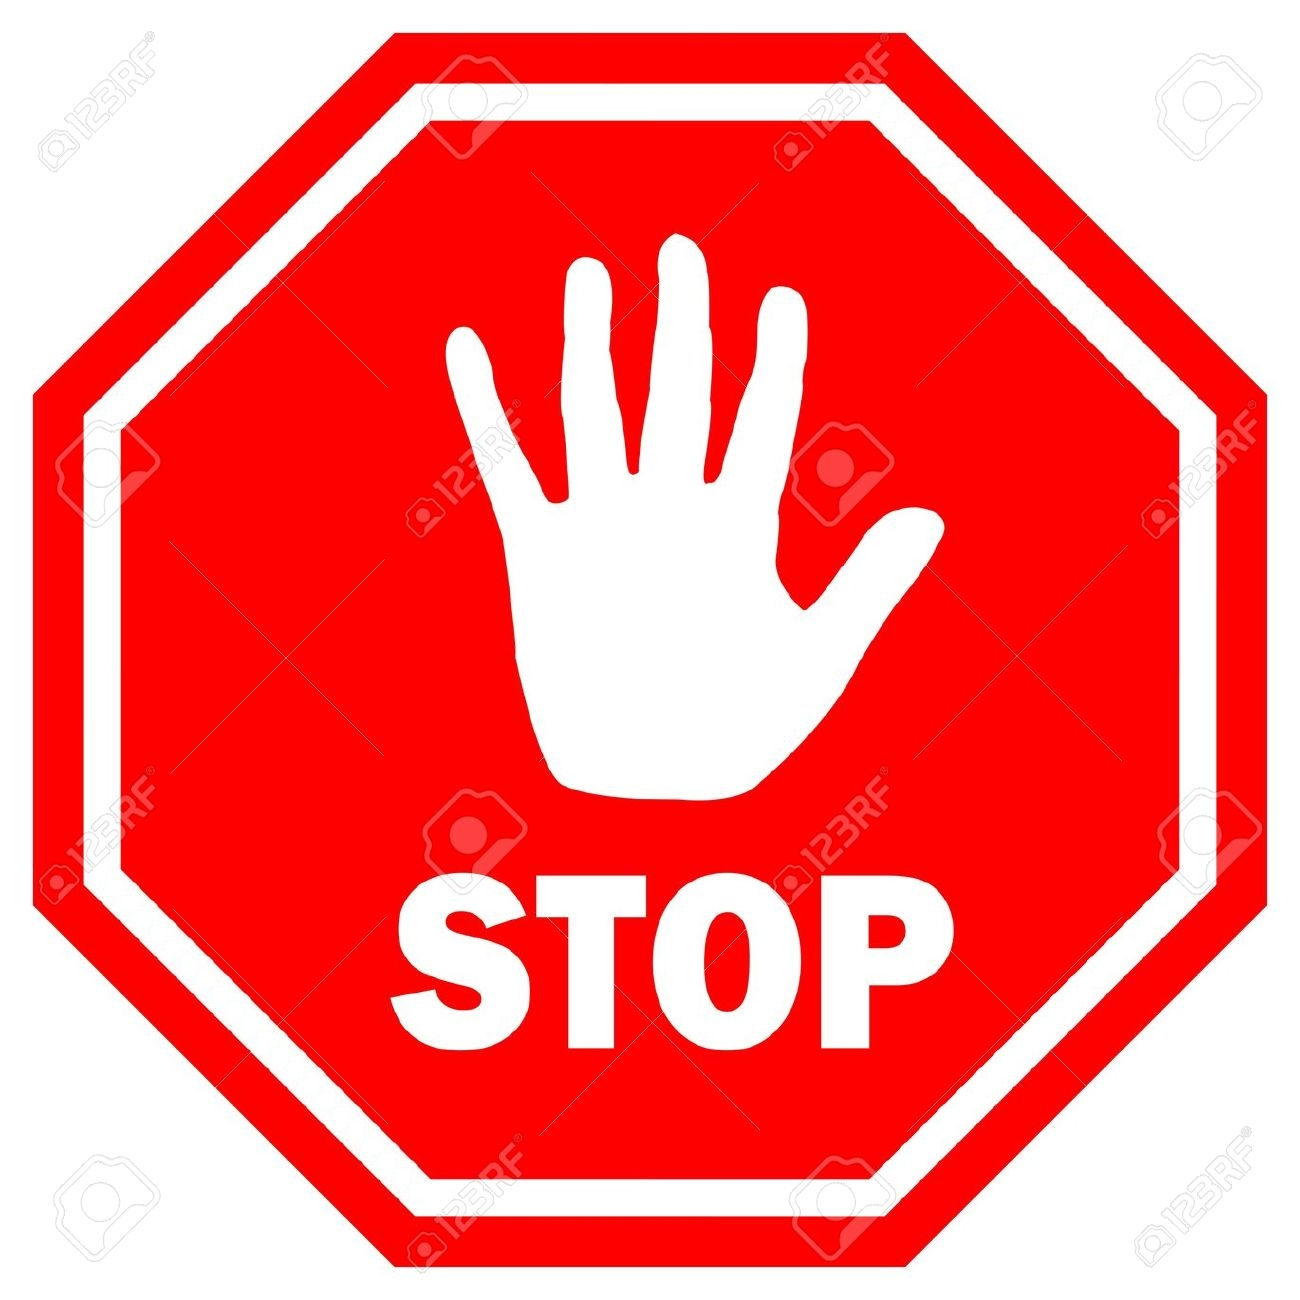 Stop sign hand clipart.